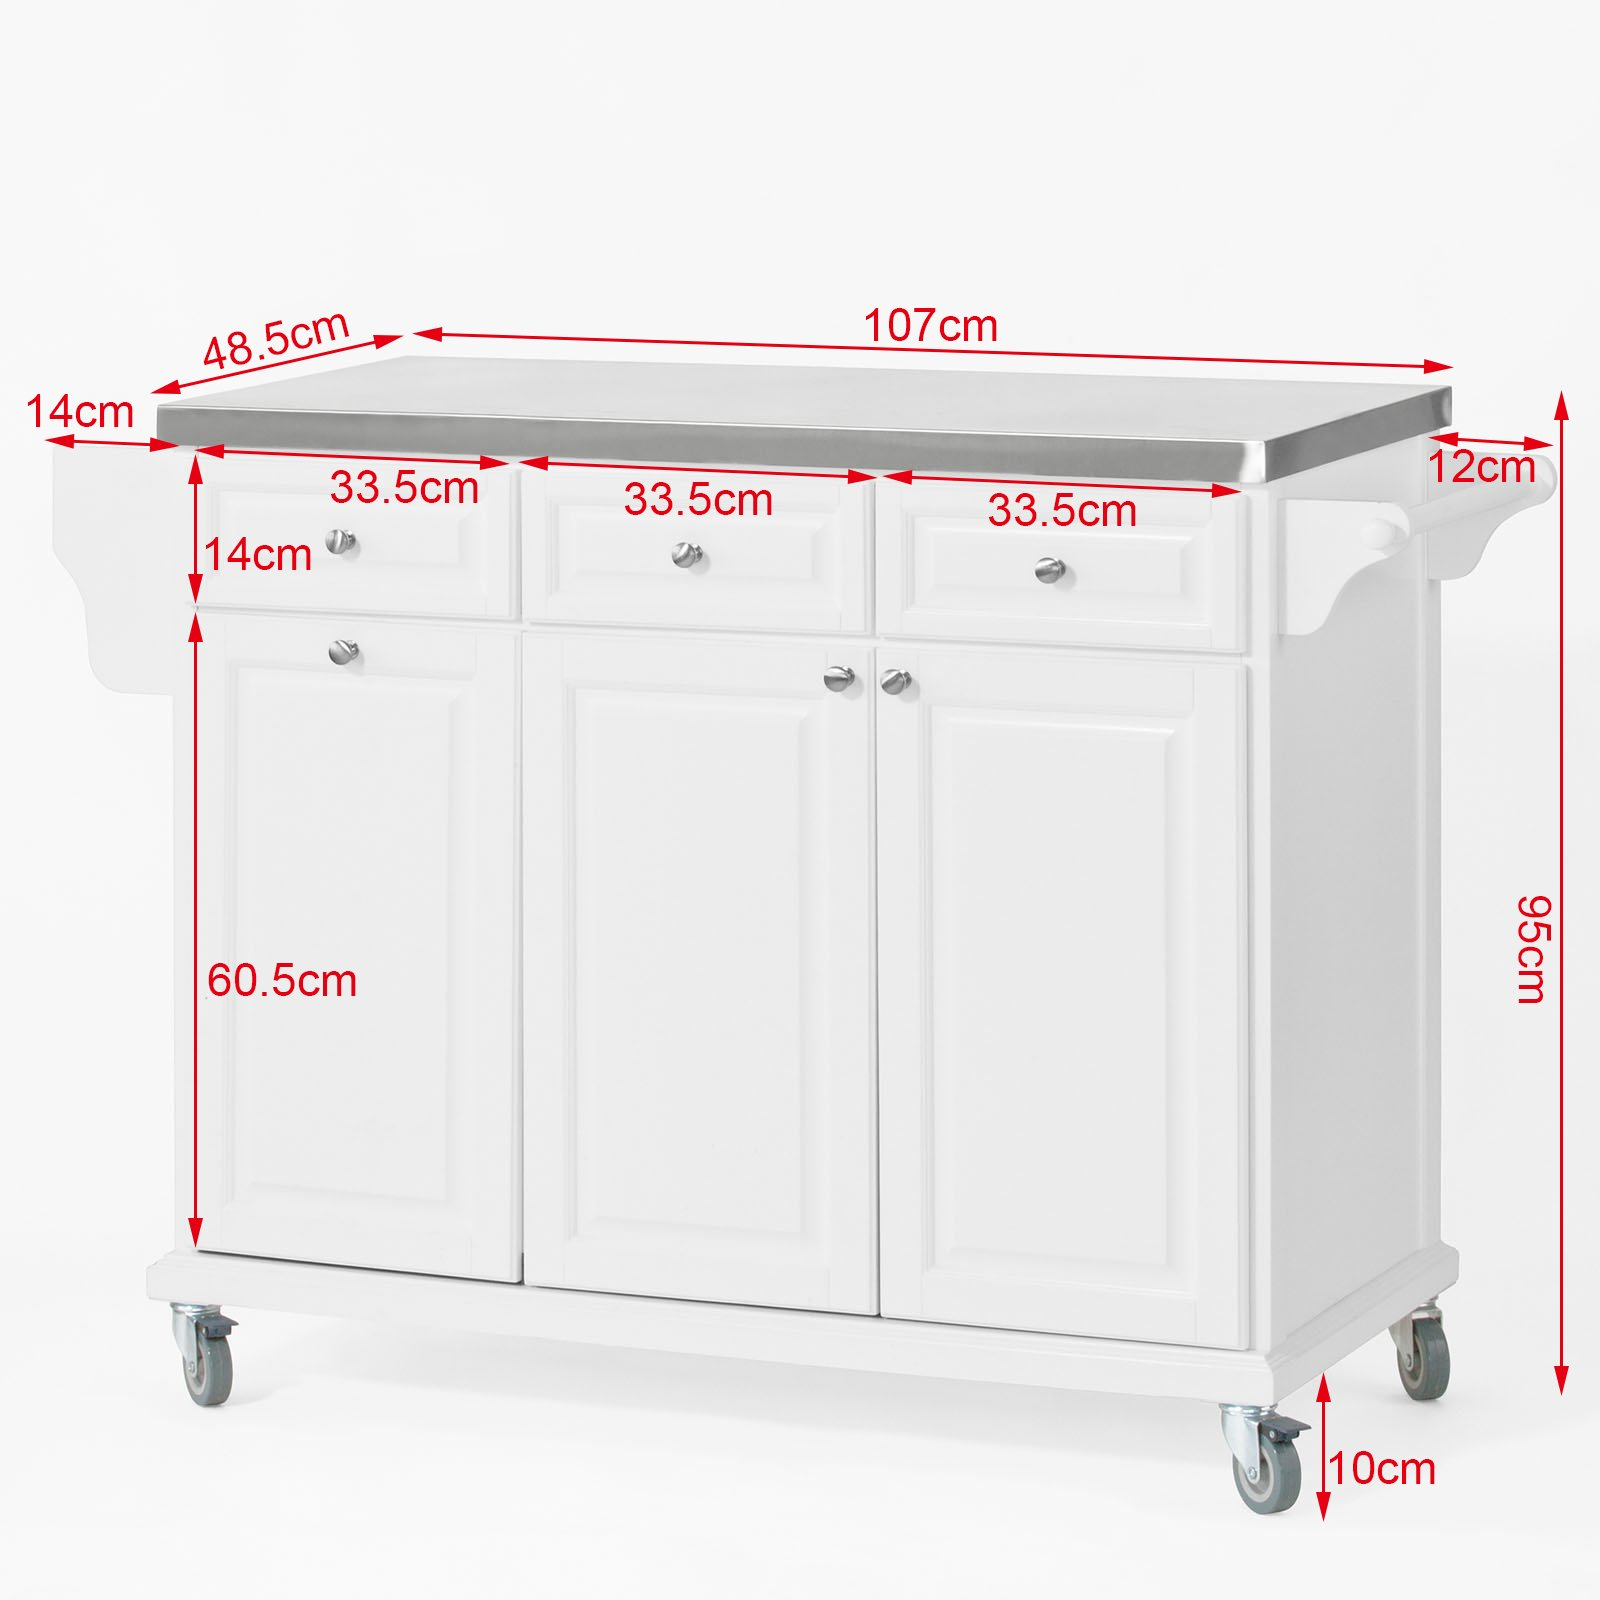 SoBuy?? White Luxury Kitchen Island Storage Trolley Cart, Kitchen Cabinet with Stainless Steel Worktop, FKW33-W by SoBuy by SoBuy (Image #4)